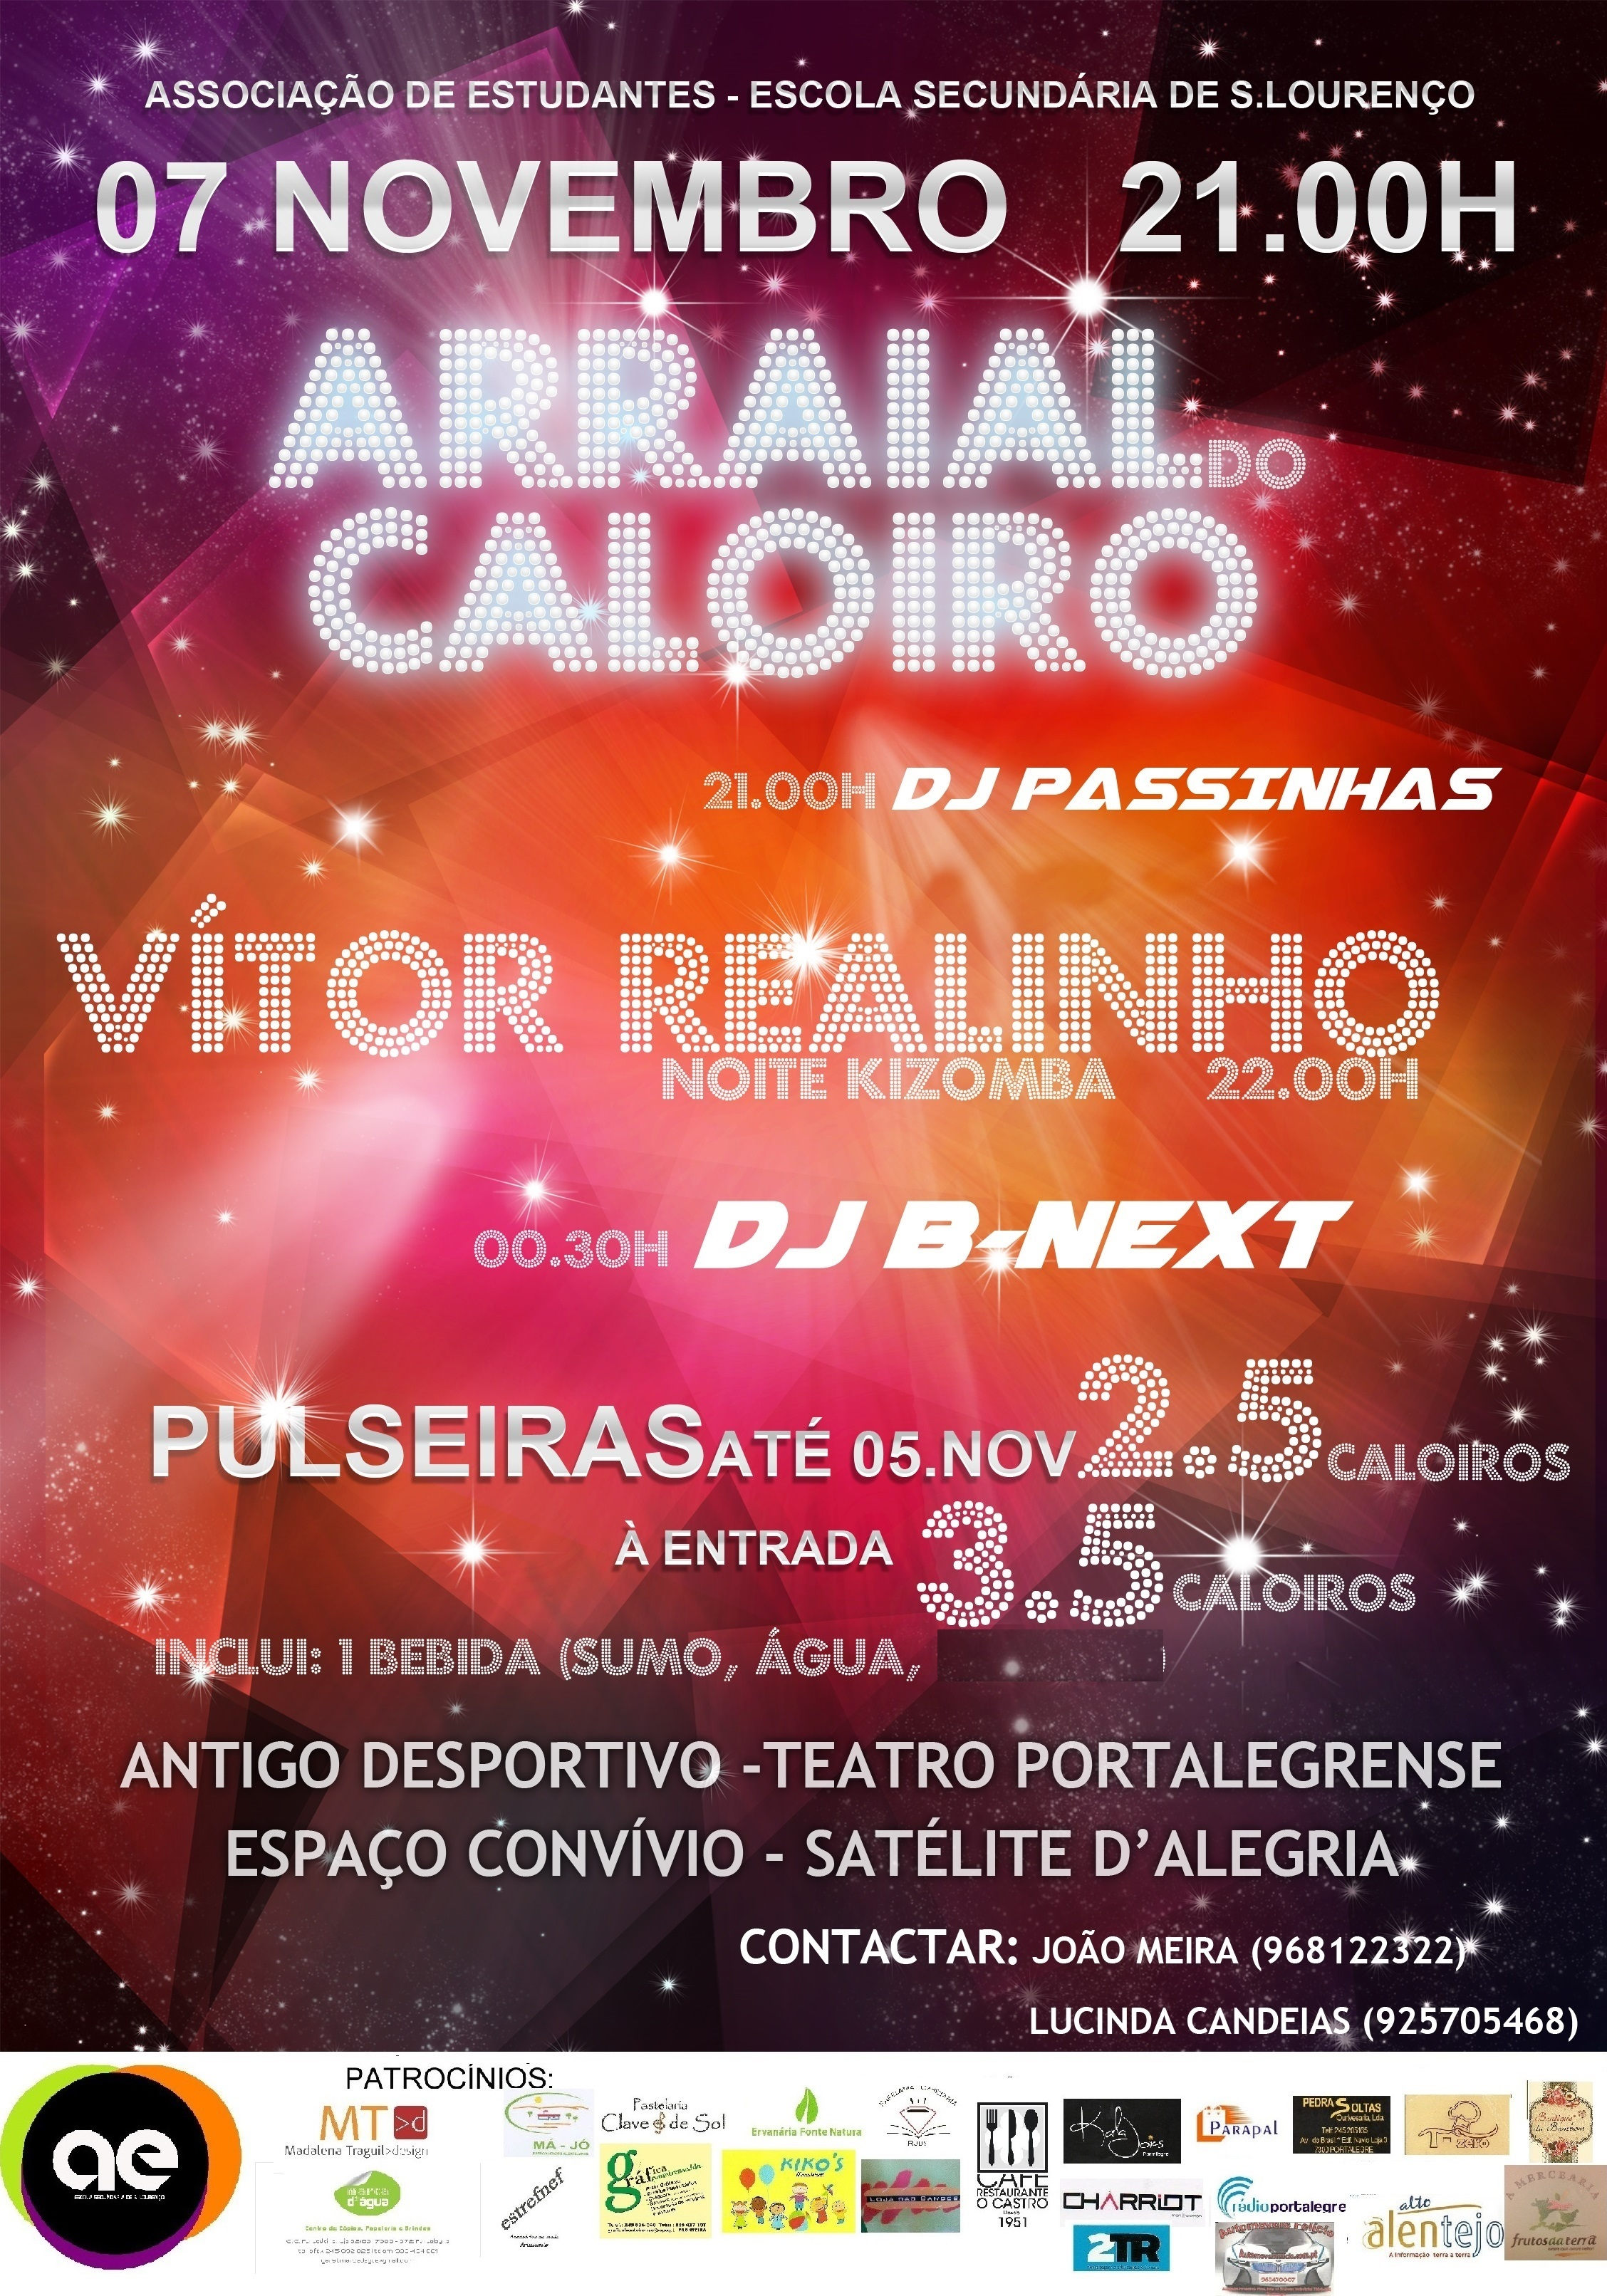 arraial do caloiro